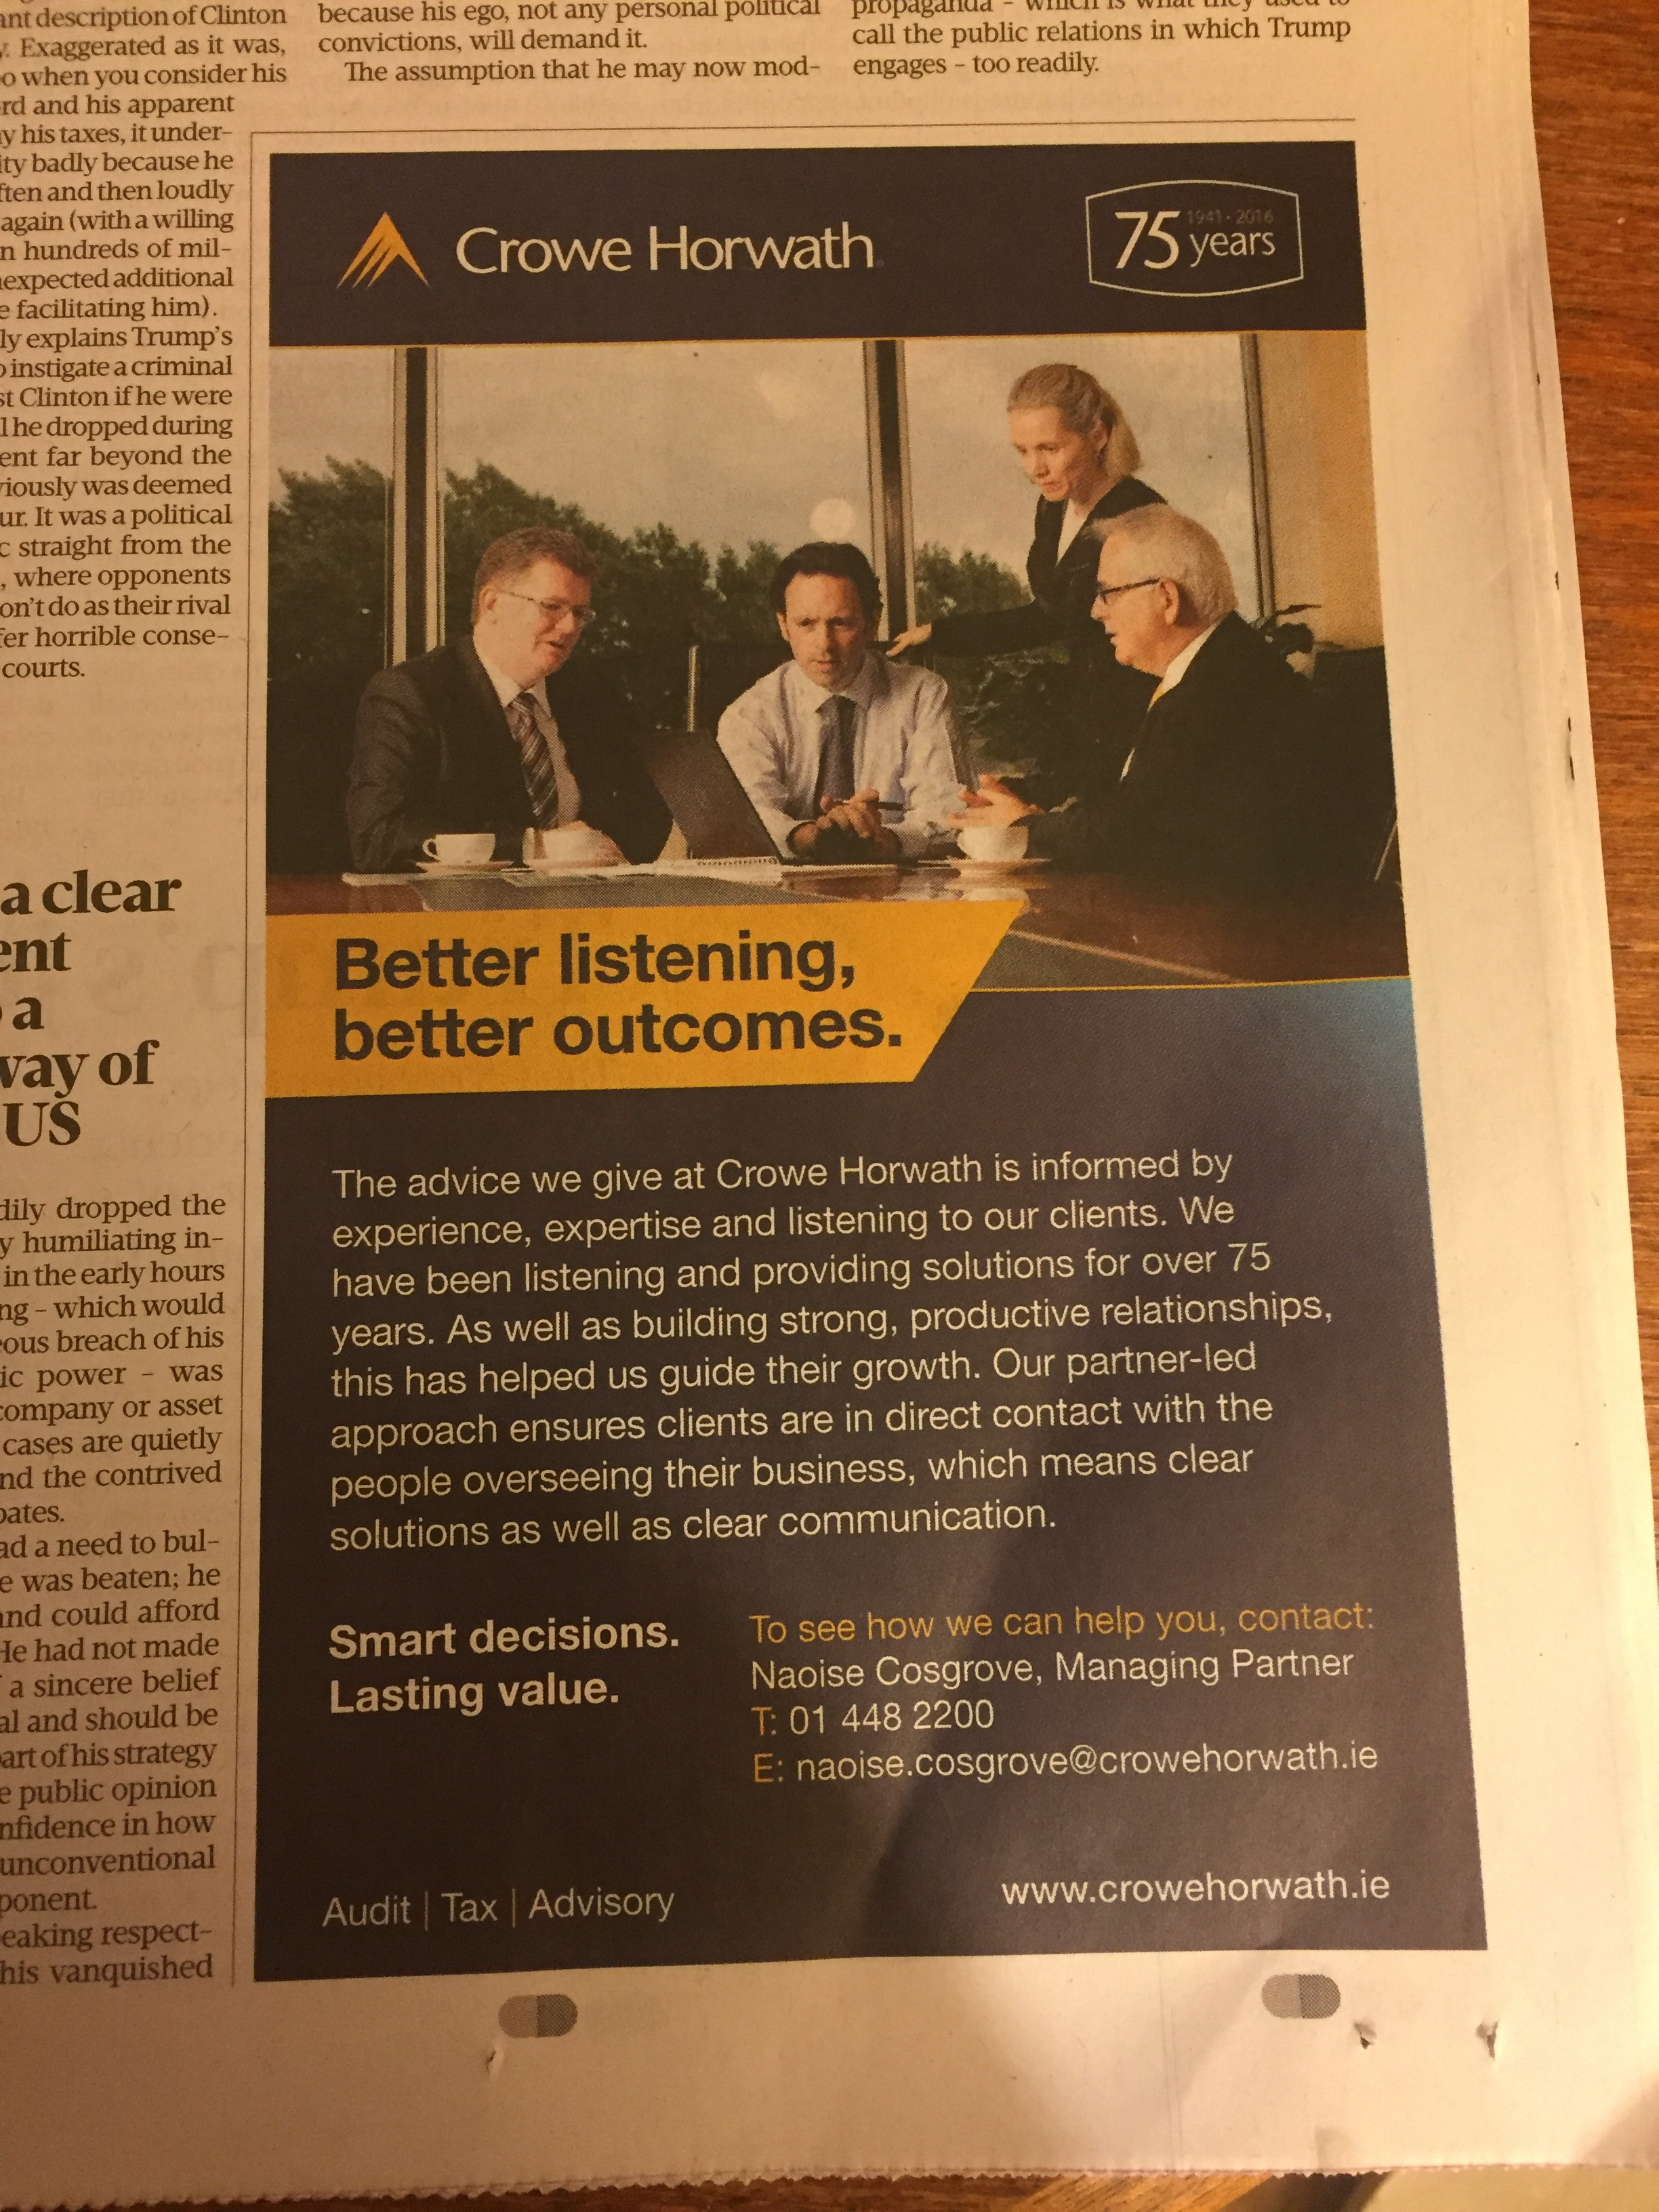 Crowe Horwath – better listening better outcomes